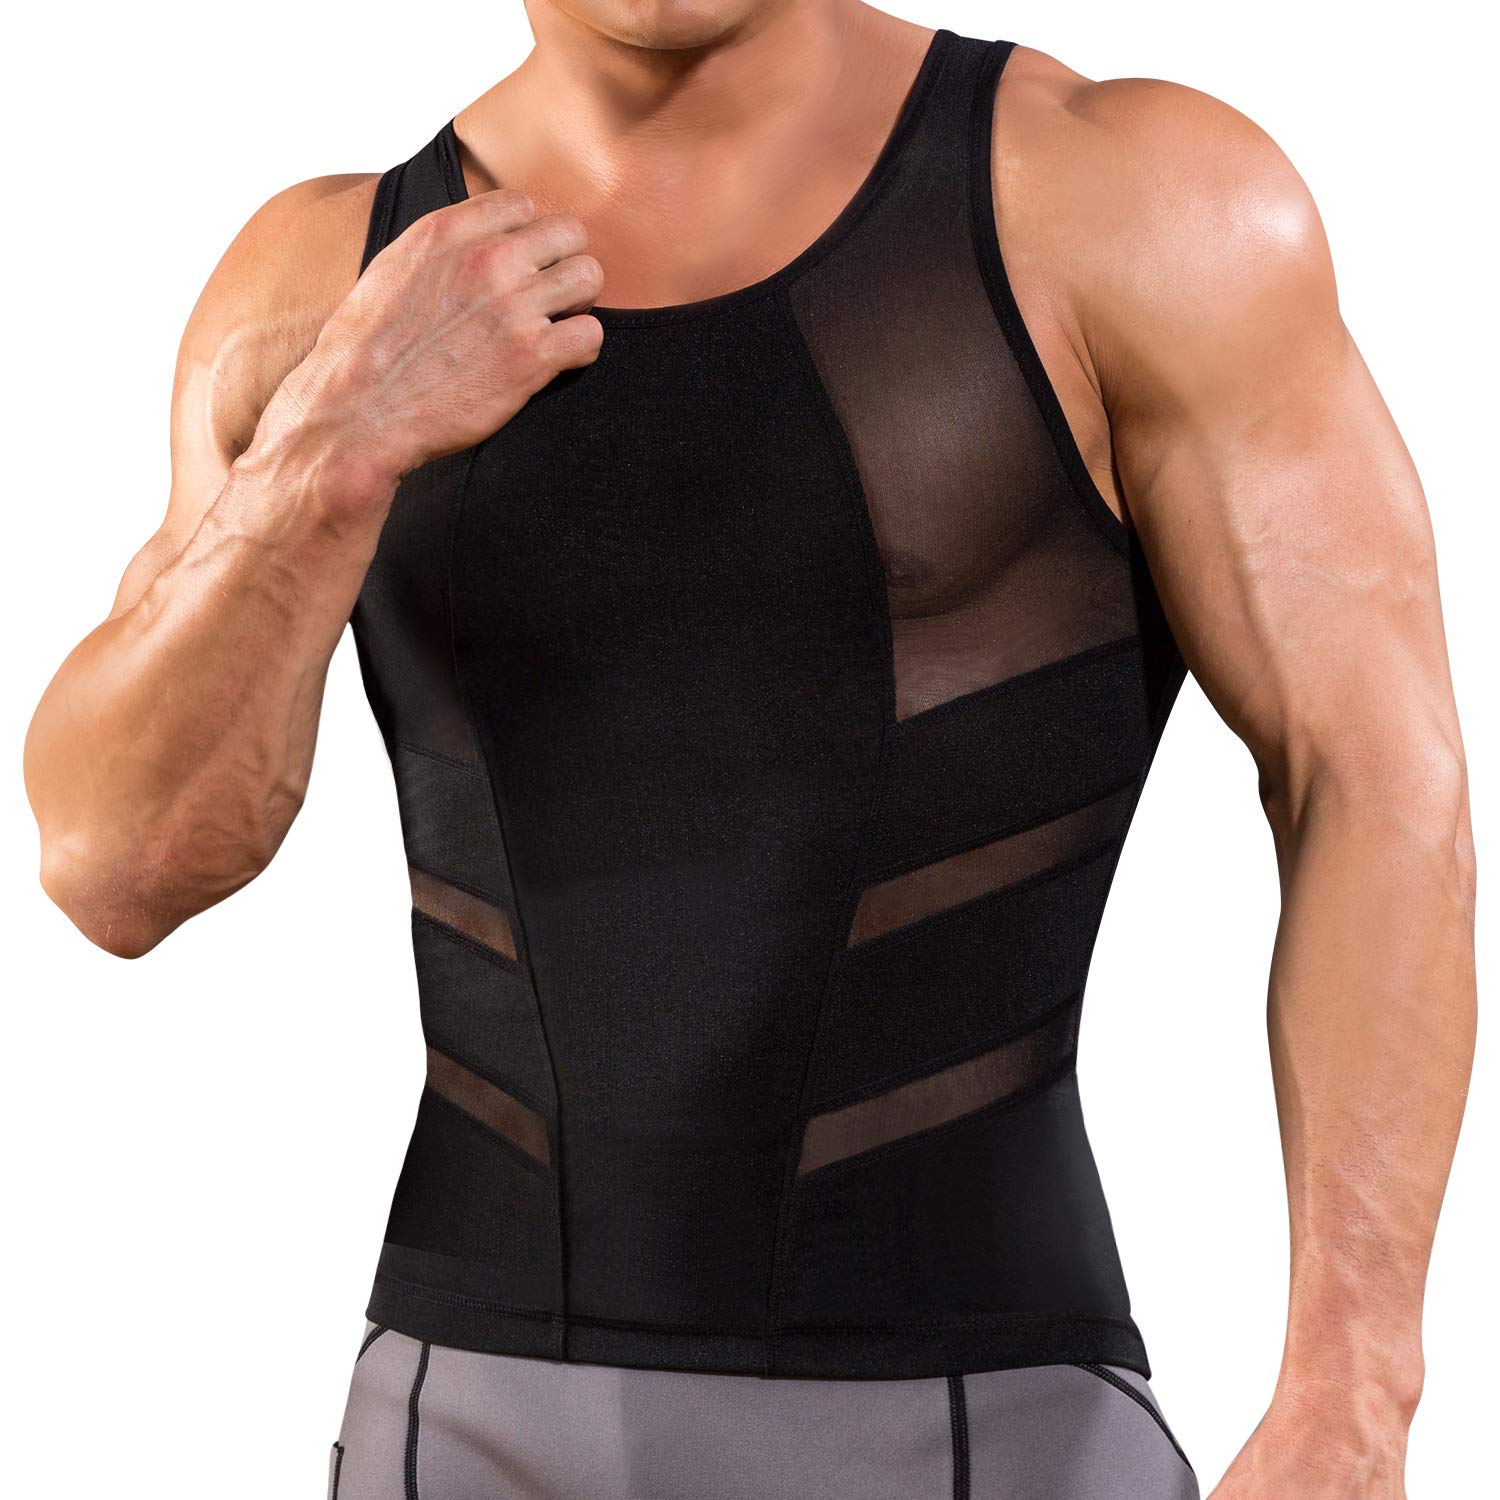 f8a30292badbb TAILONG Tank Top Slimming Vest Tight Body Shaper Tummy Underwear Men Waist  Trimmer Compression Shirt product